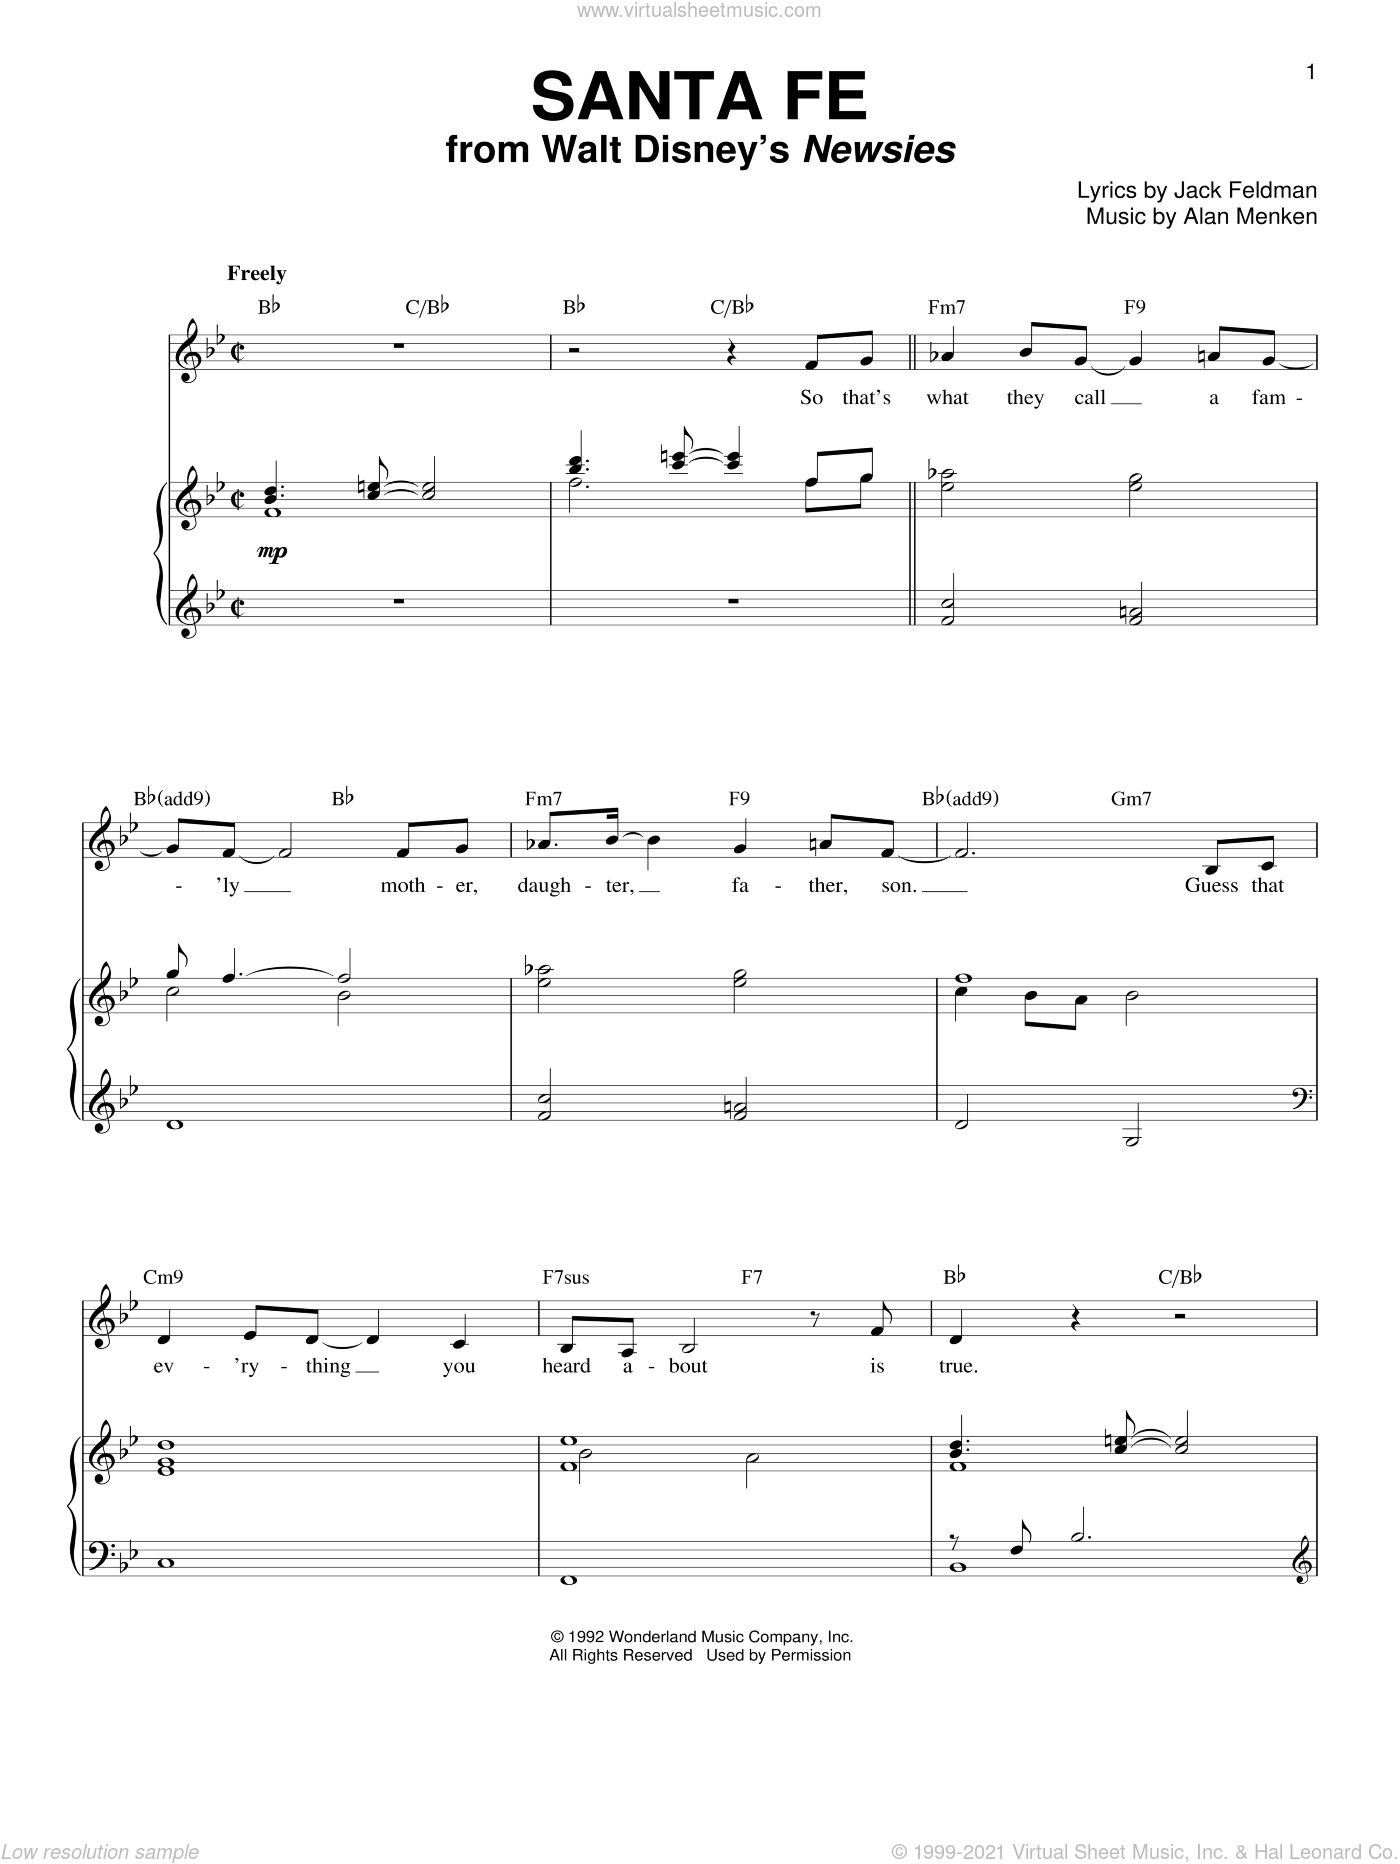 Santa Fe sheet music for voice and piano by Jack Feldman